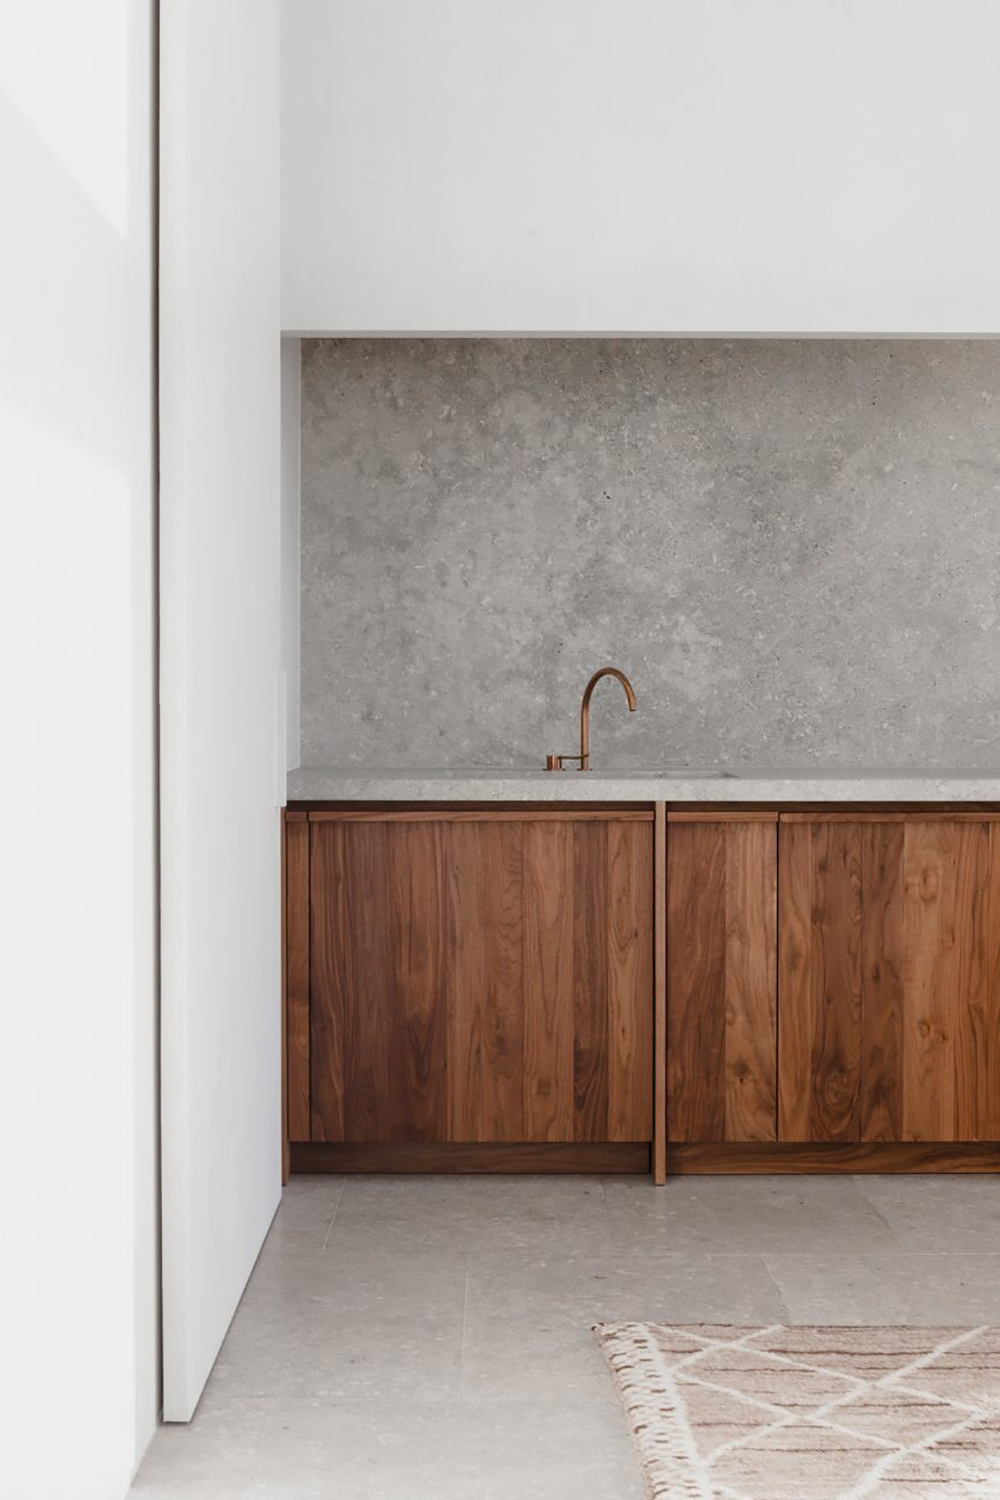 Home, interiors, simple, design, timber, concrete, oracle, fox